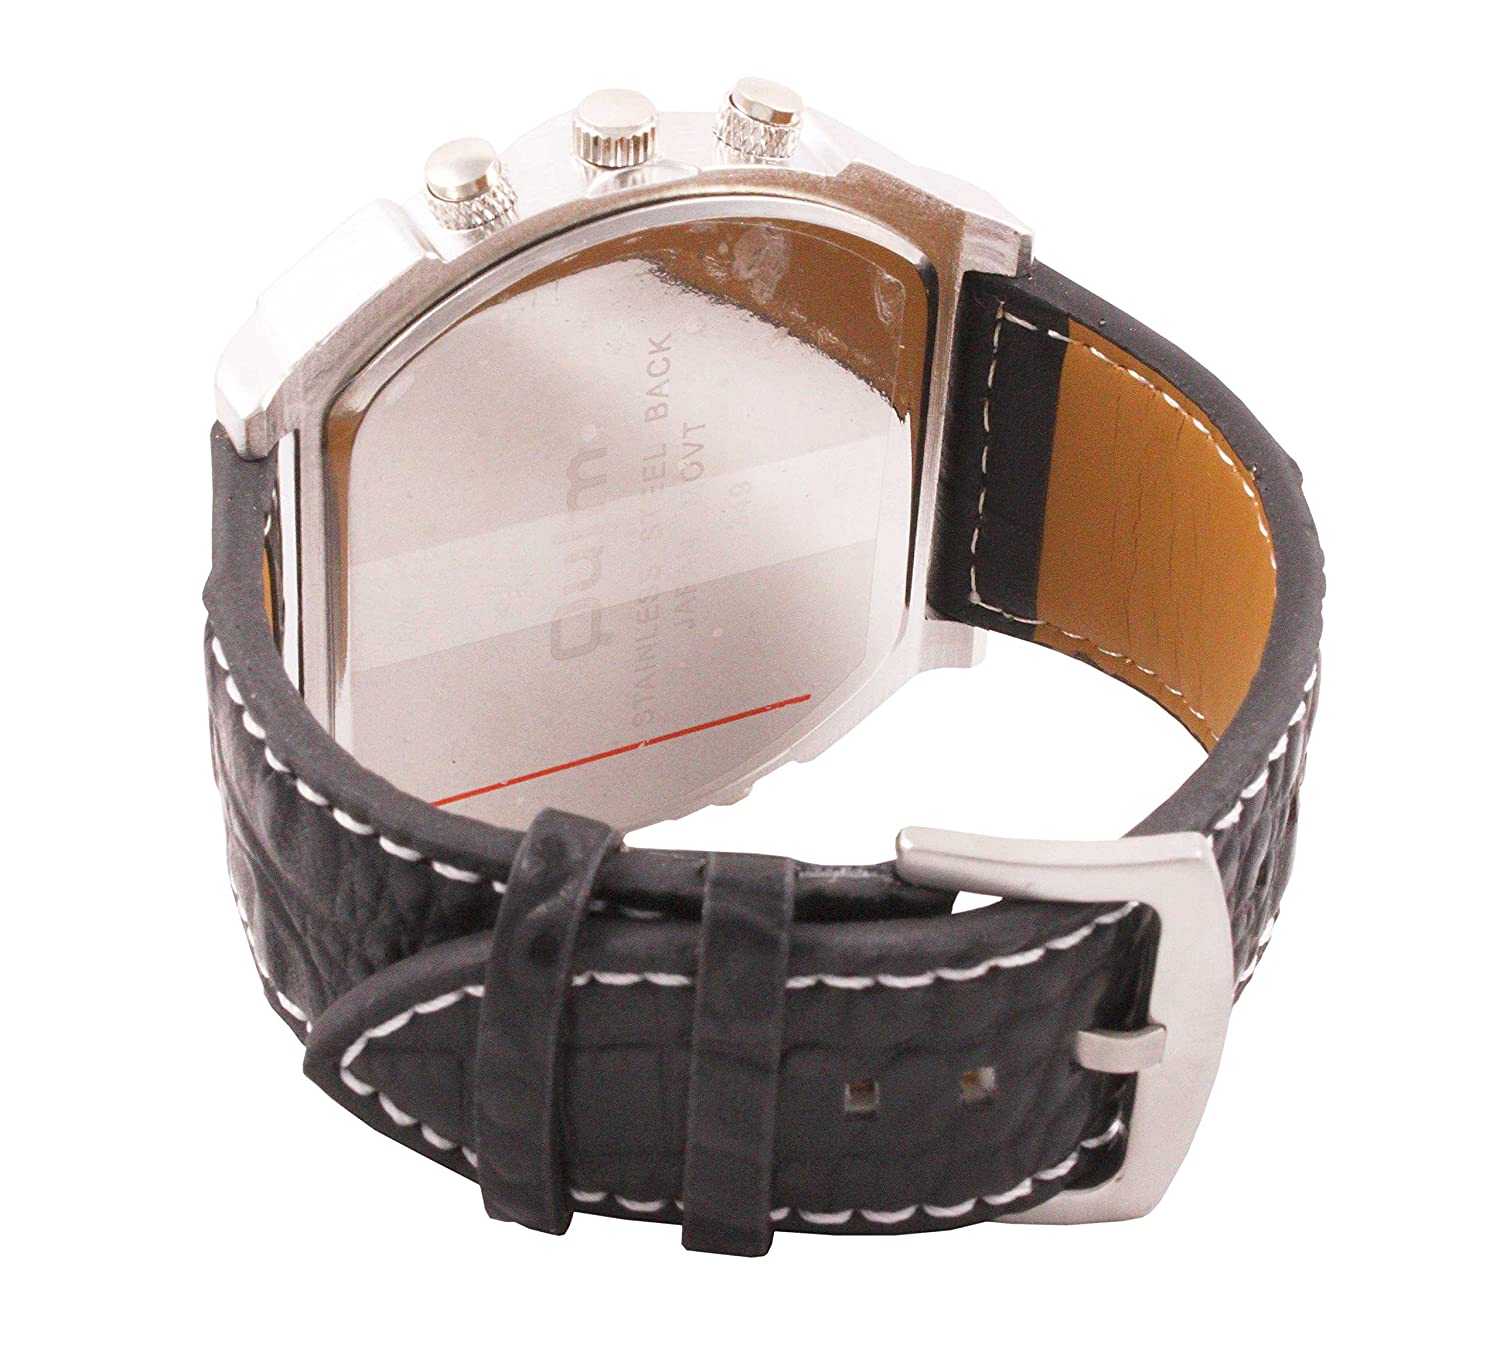 Amazon.com: ShoppeWatch Mens Oversized Watch Dual Time Display Quartz Black Leather Band White Dial OM-170: Watches